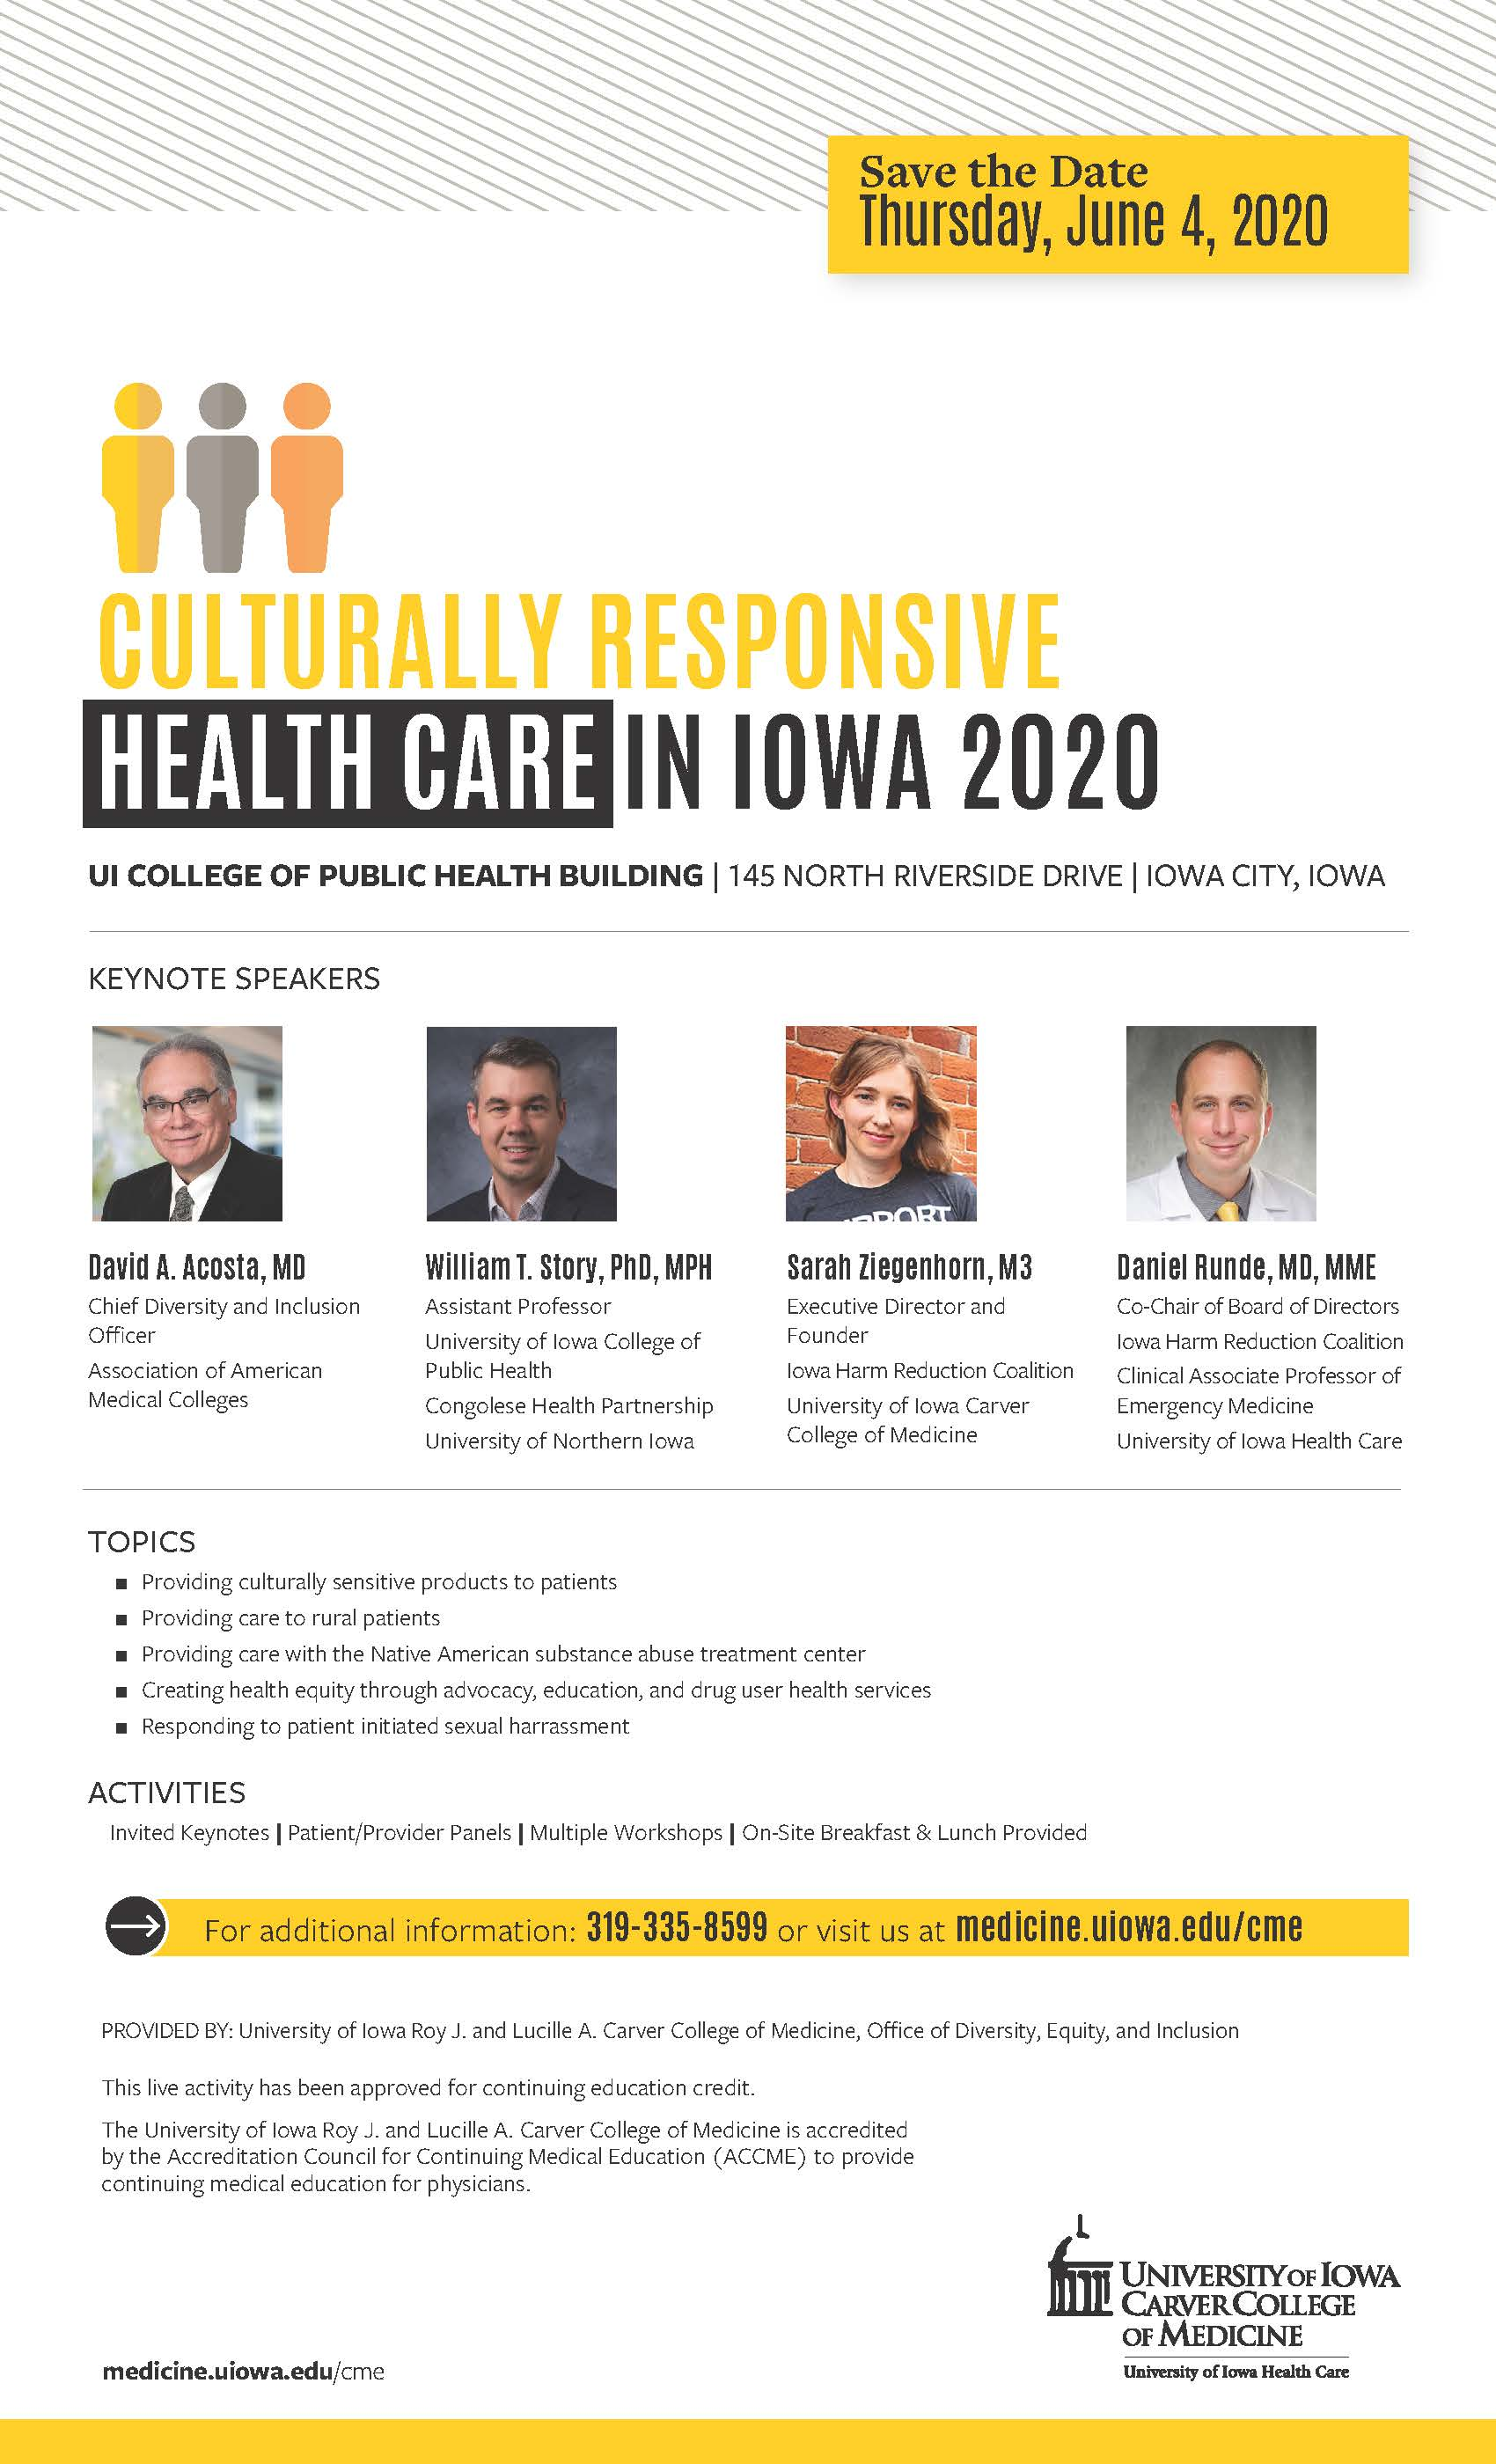 Culturally Responsive Health Care in Iowa 2020 Banner